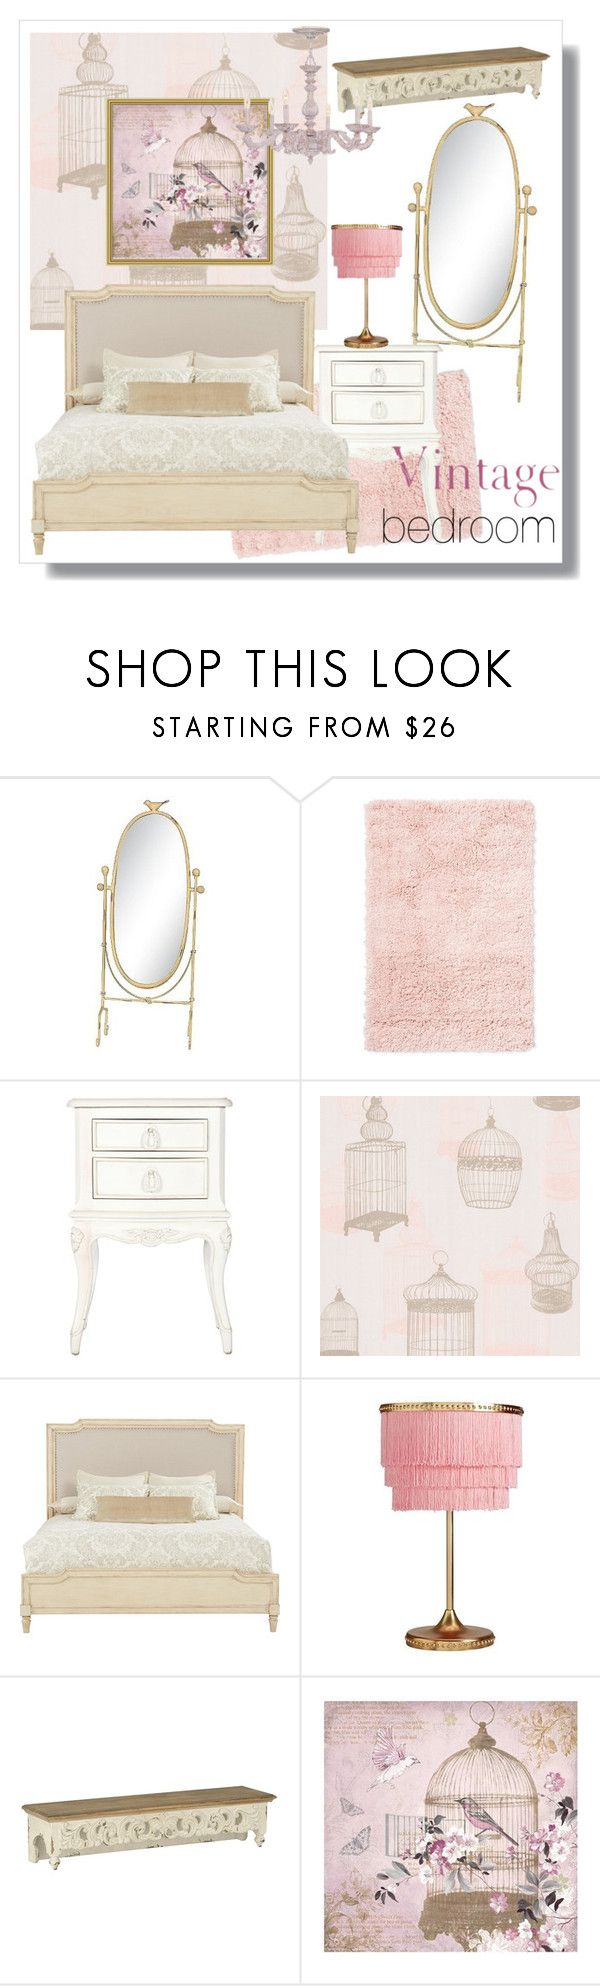 """""""vintage bird bedroom"""" by artistic-biscuit ❤ liked on Polyvore featuring interior, interiors, interior design, home, home decor, interior decorating, 3R Studios, Room Essentials, Shabby Chic and Brewster Home Fashions"""